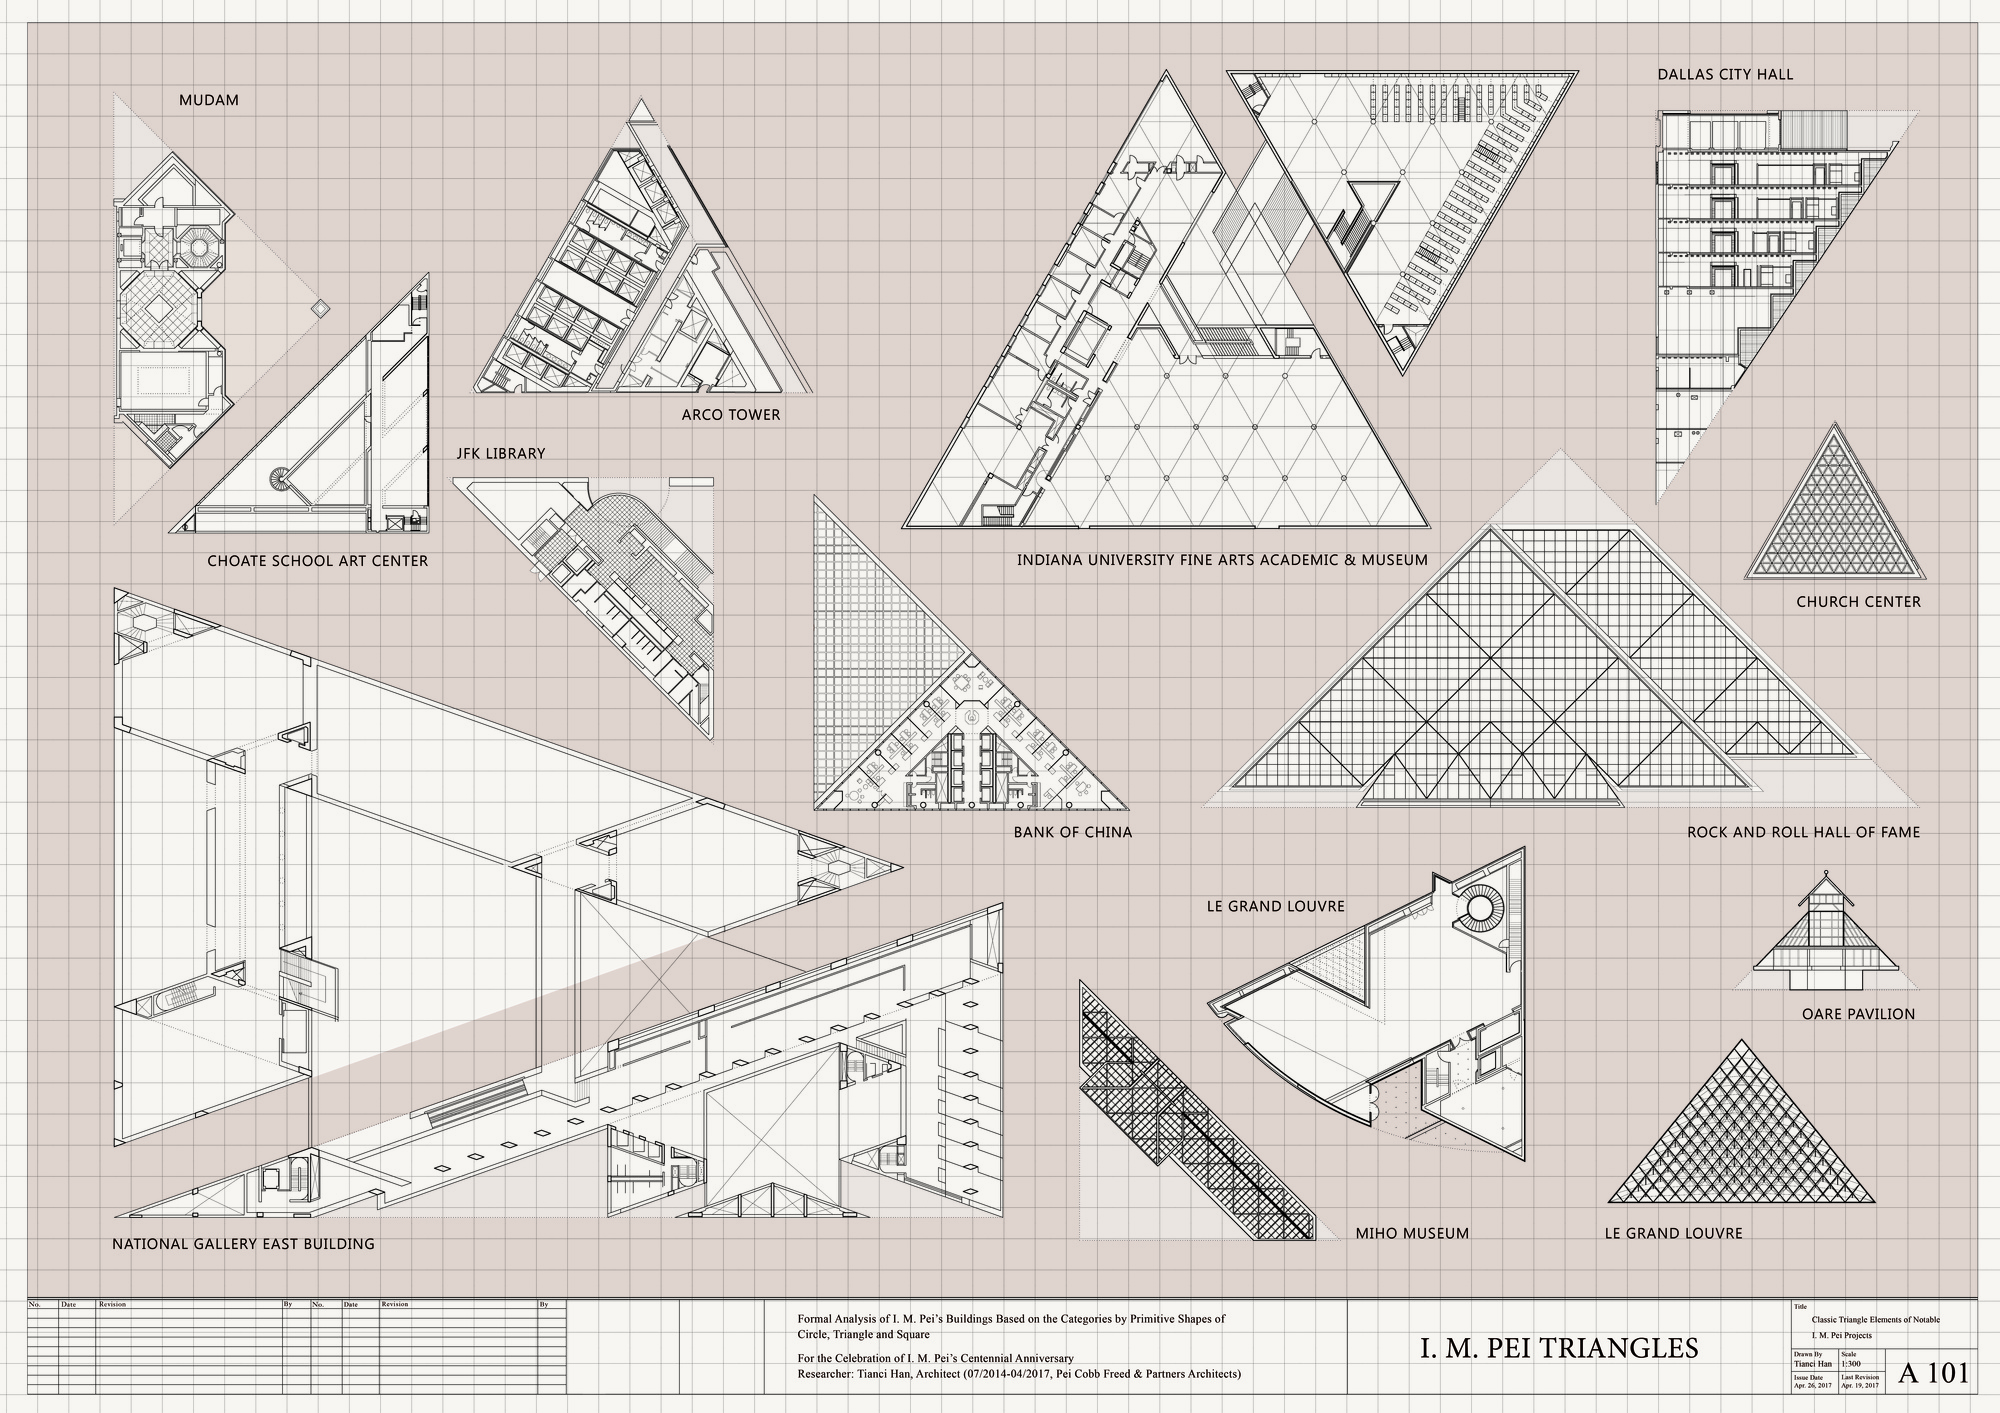 I m pei architectural analysis of two buildings essay